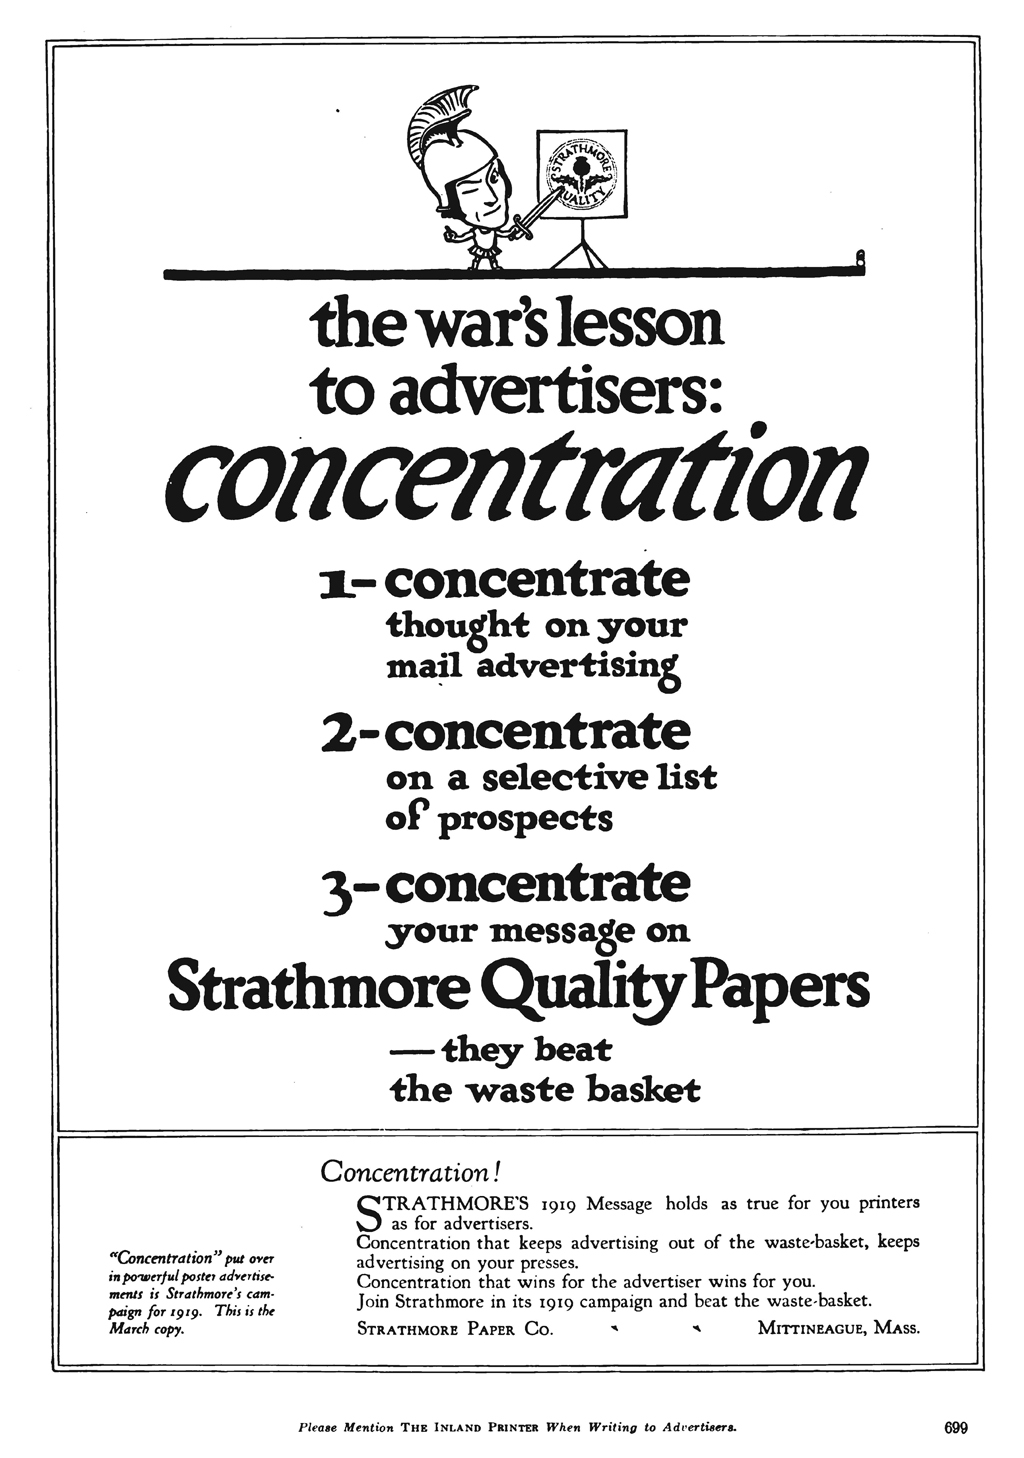 """""""The war's lesson to advertisers…"""" advertisement for Strathmore Quality Papers in The Inland Printer vol. 62, no. 6 (March 1919)."""